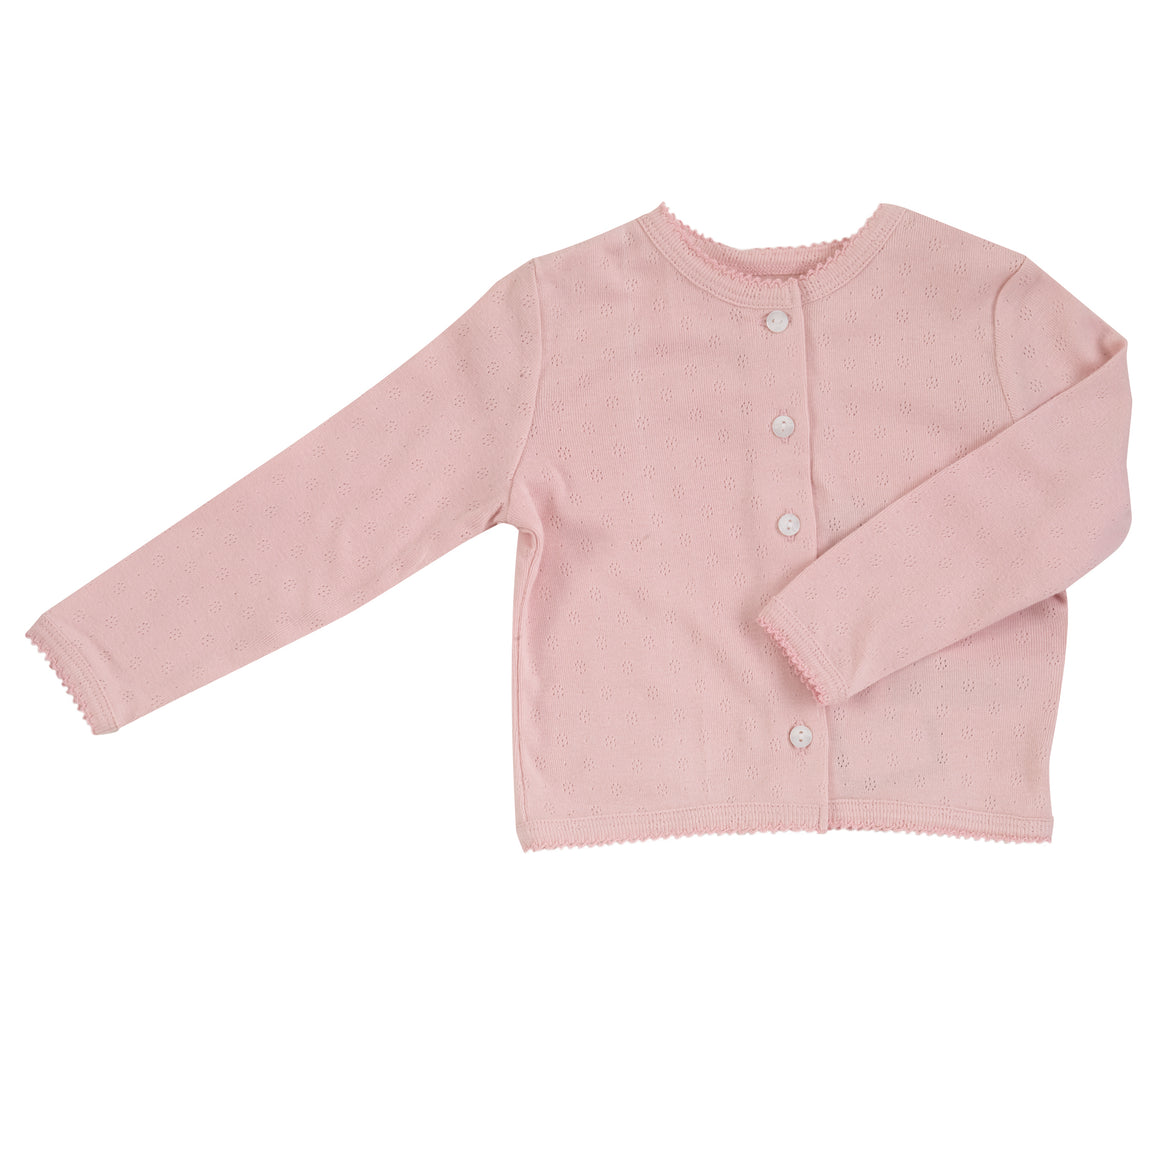 Pointelle Cardigan in Pink